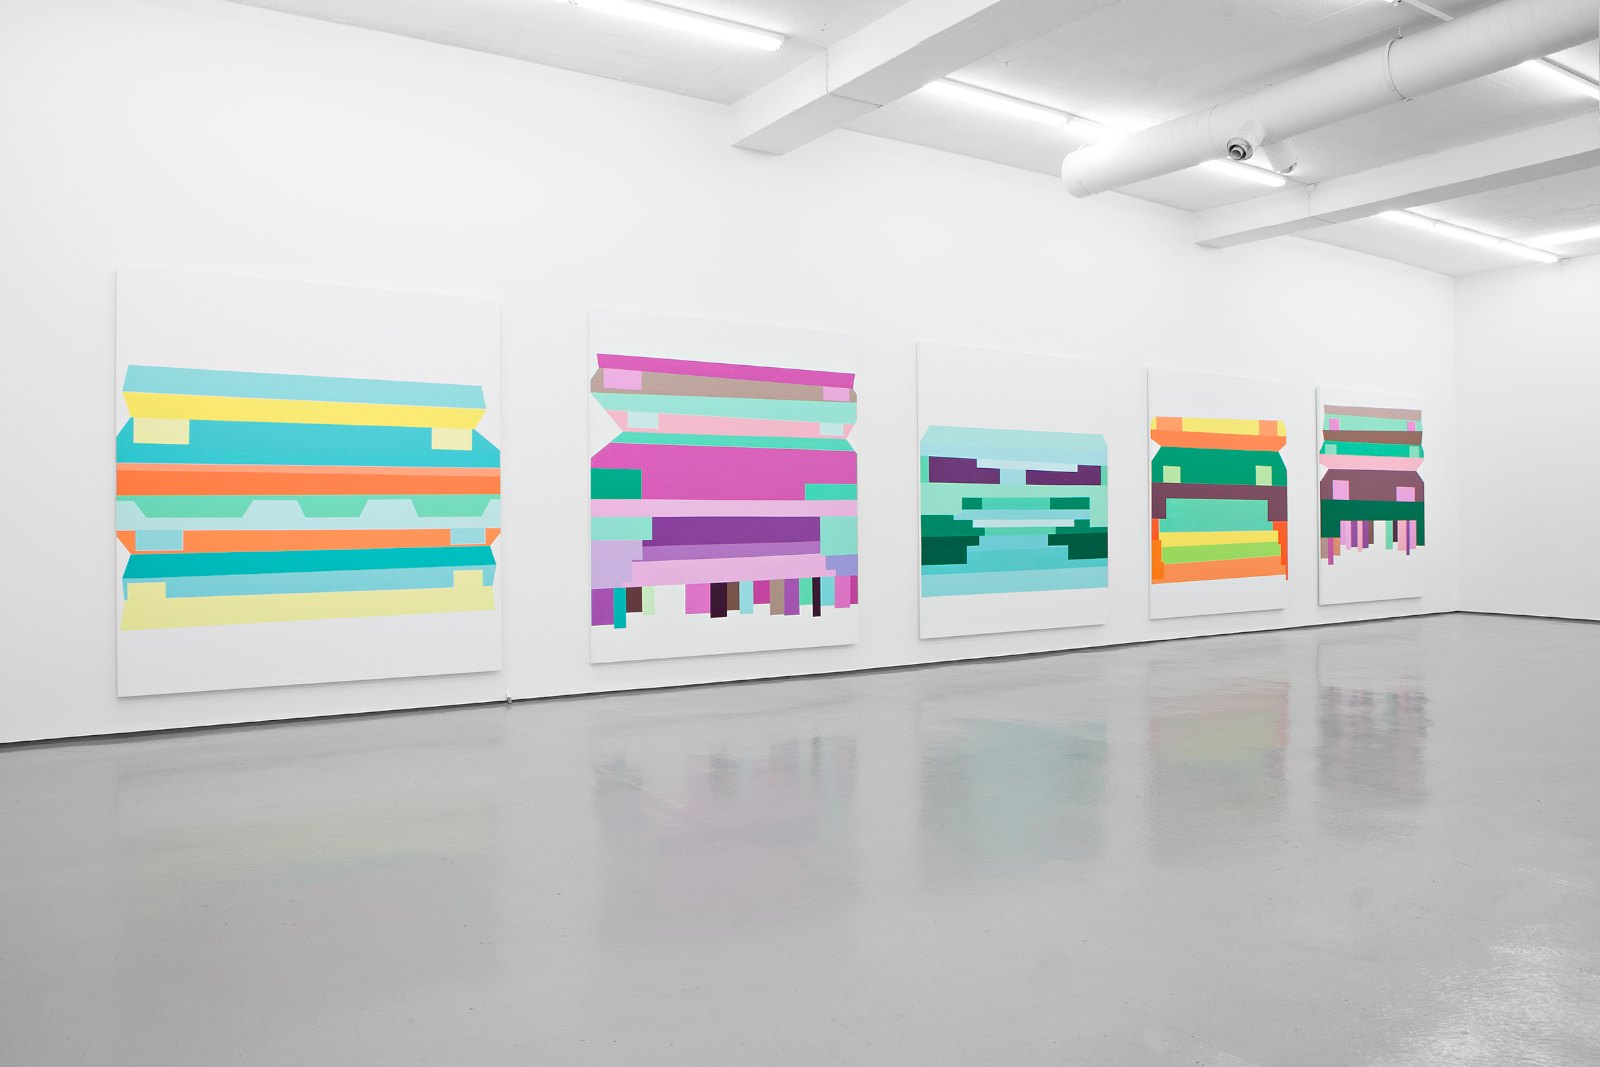 Installation view, Olav Christopher Jenssen, Panorama Second Generation / The Letharia Paintings, Galleri Riis, Oslo 2013